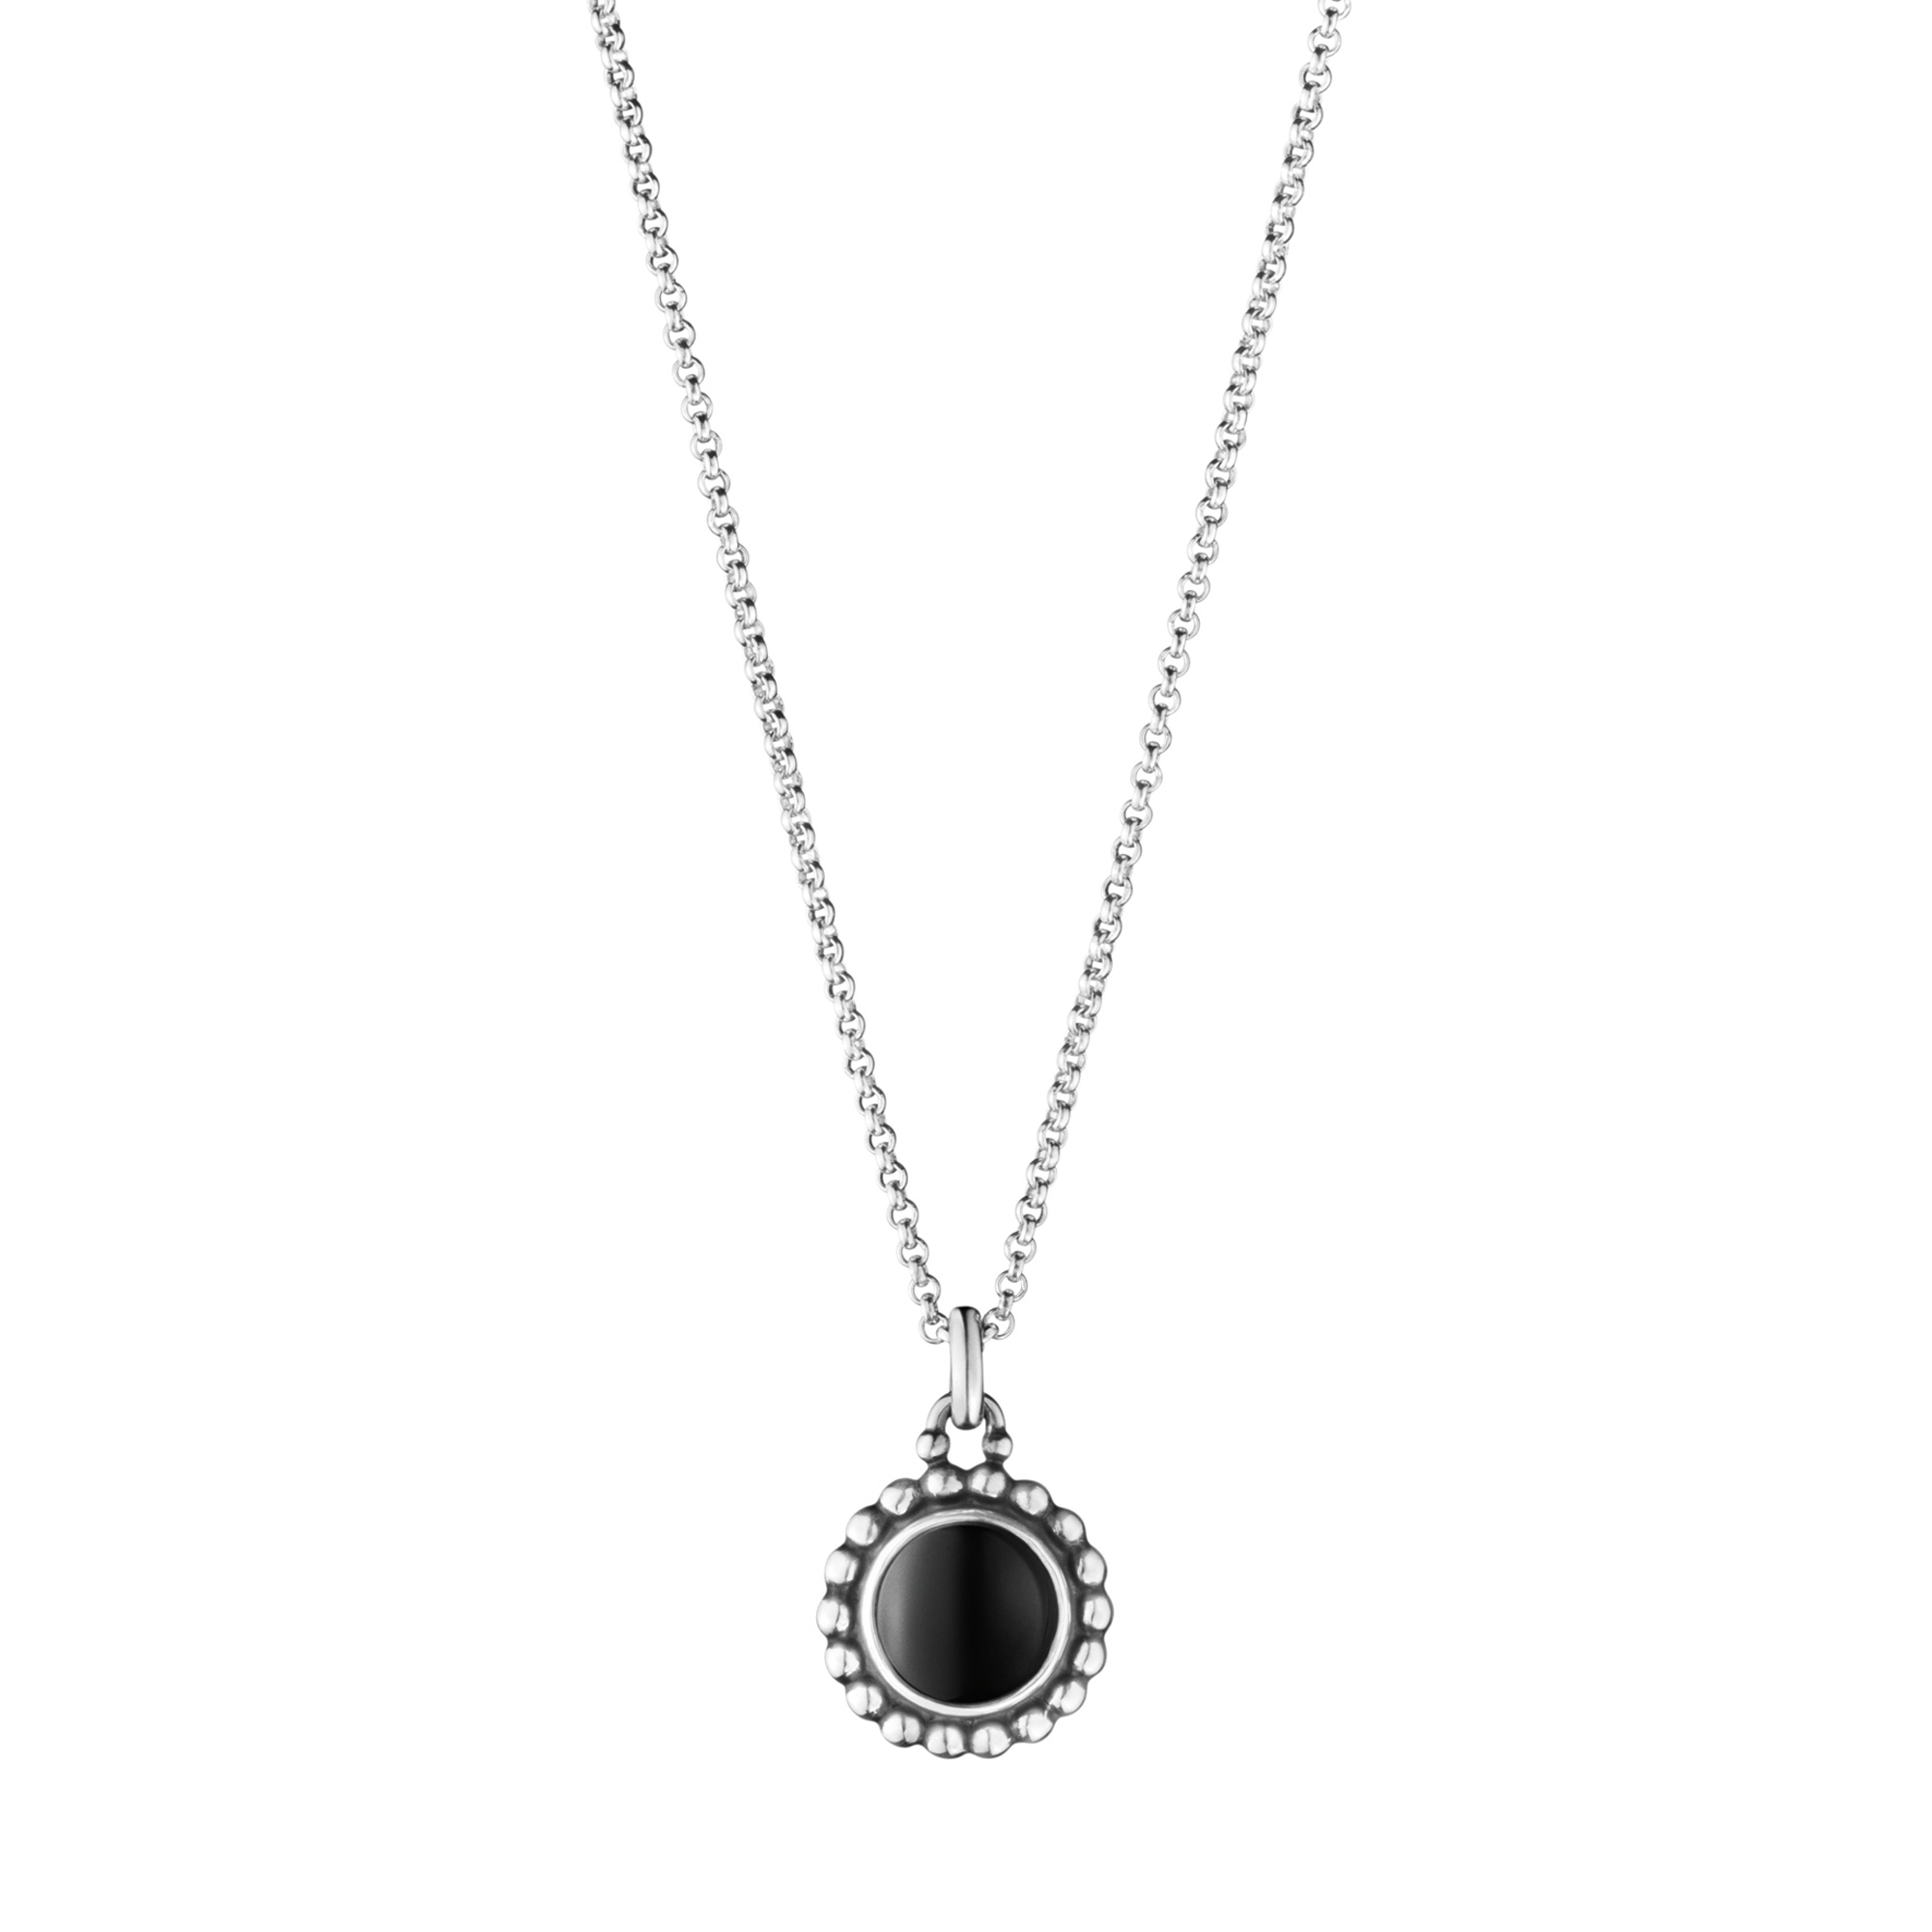 Georg Jensen Moonlight Blossom Oxidized Sterling Silver & Black Agate Pendant Necklace